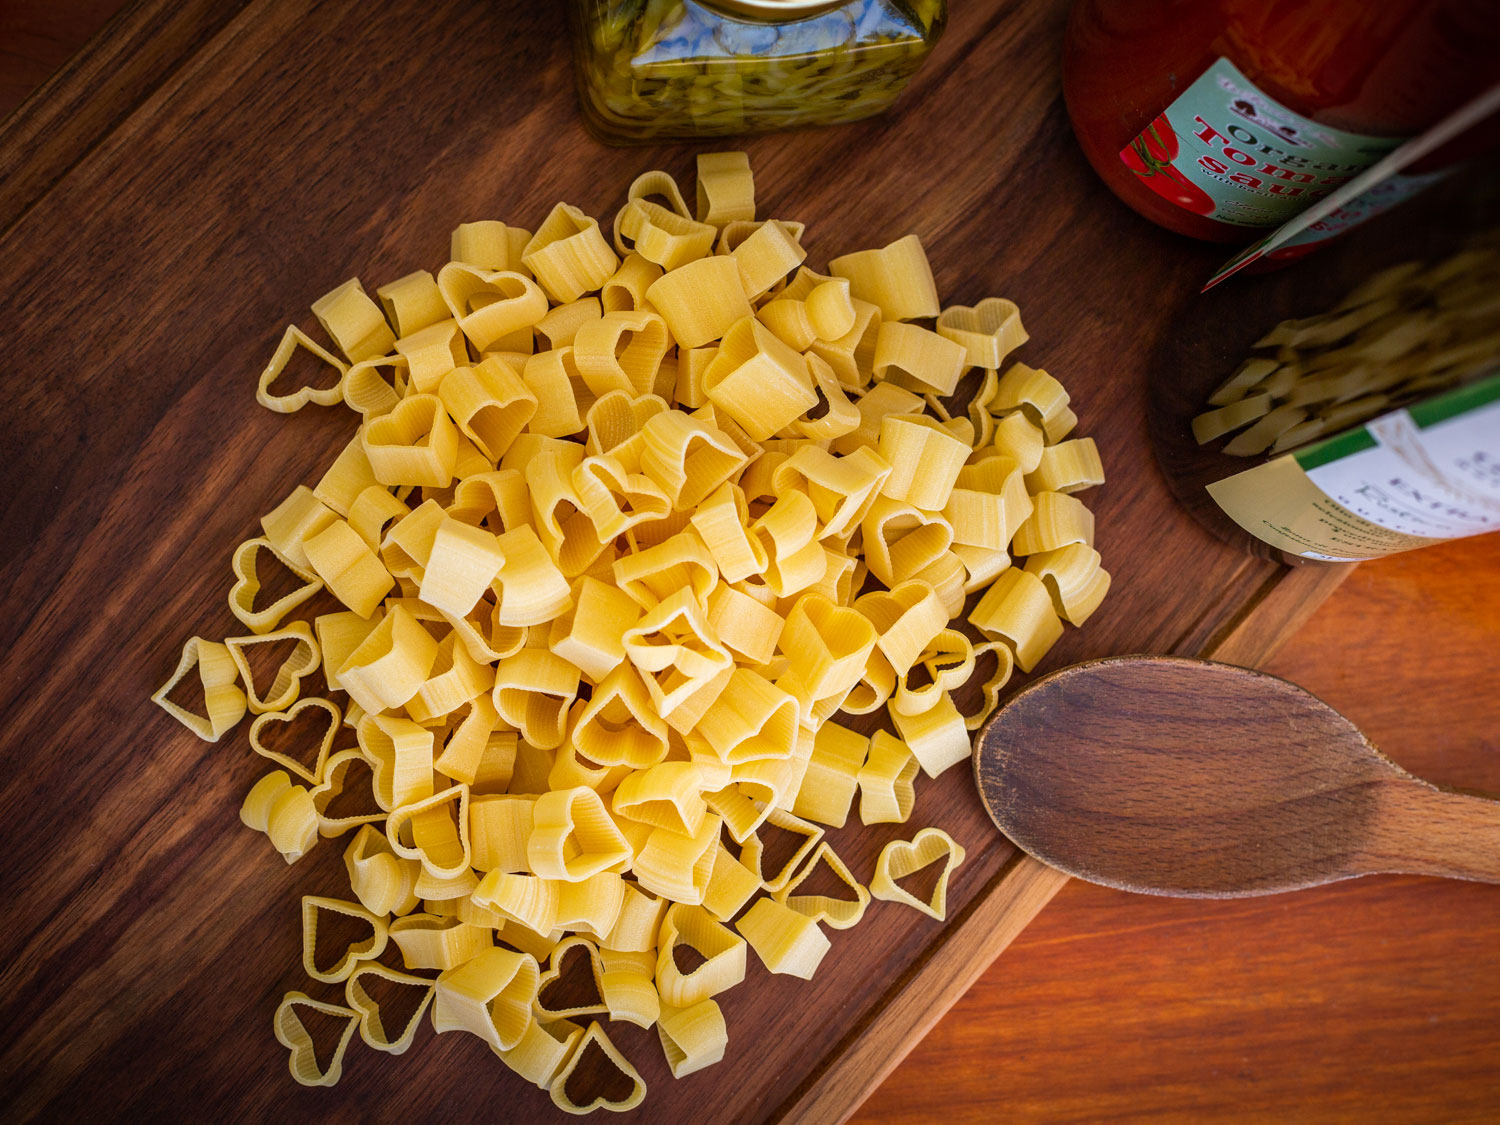 Verrigni Italian pasta is used by top chefs in Italy and brought to you by Heart of Abruzzo